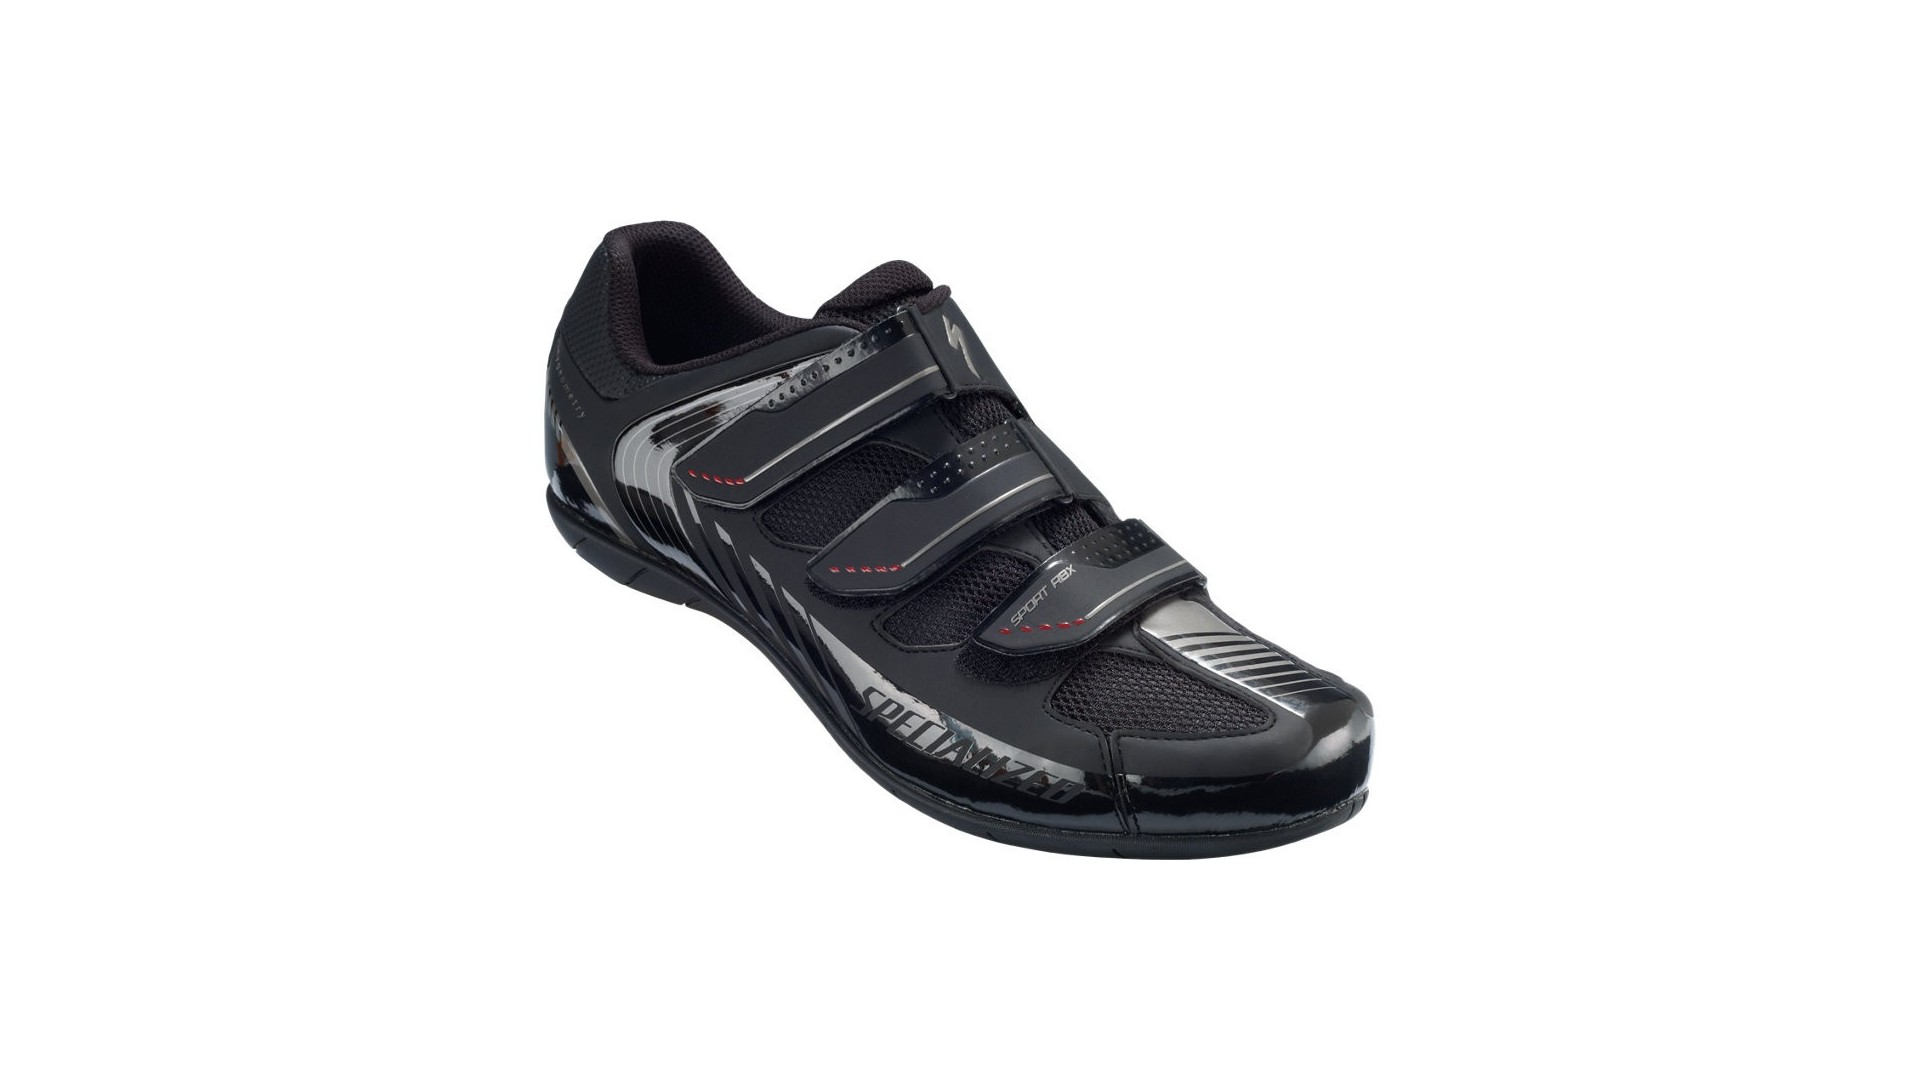 Sport Rbx Road Shoe Specialized Black/Red